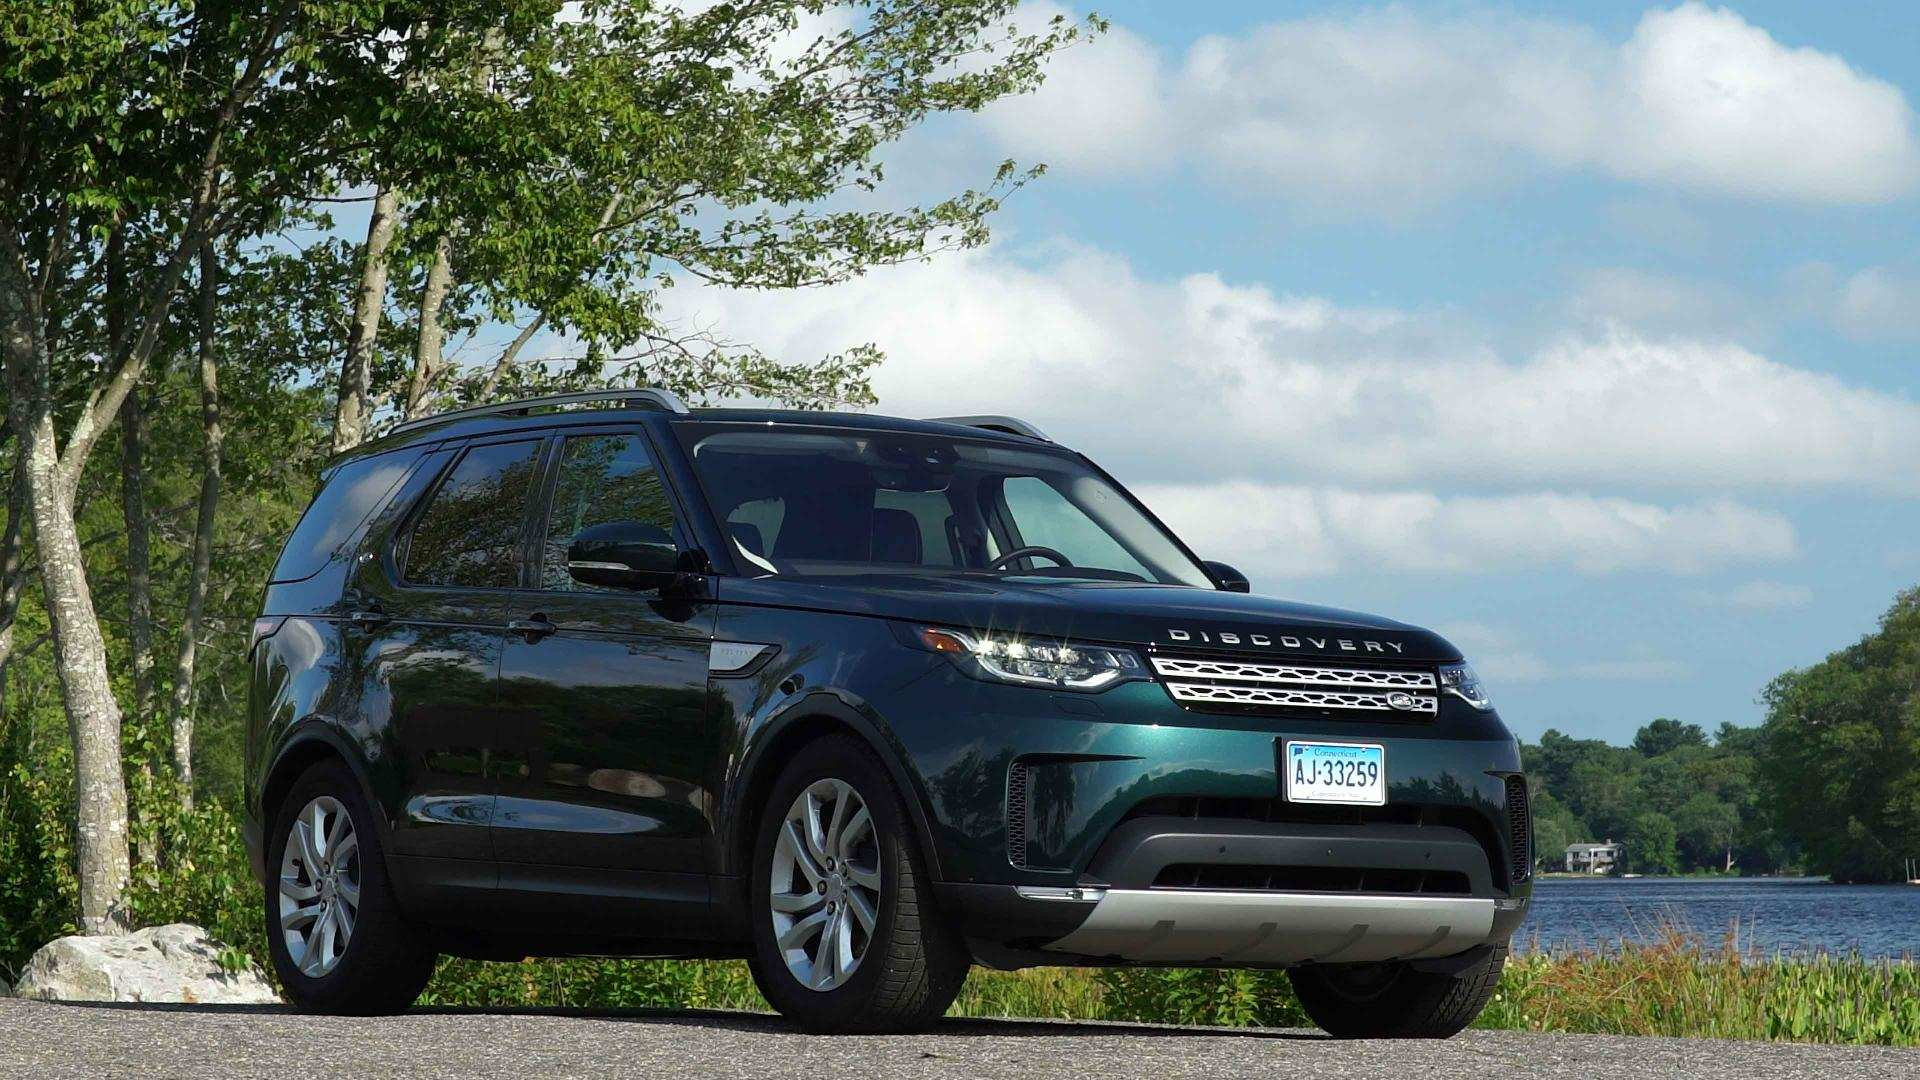 71 New 2019 Land Rover Lr2 Pricing by 2019 Land Rover Lr2